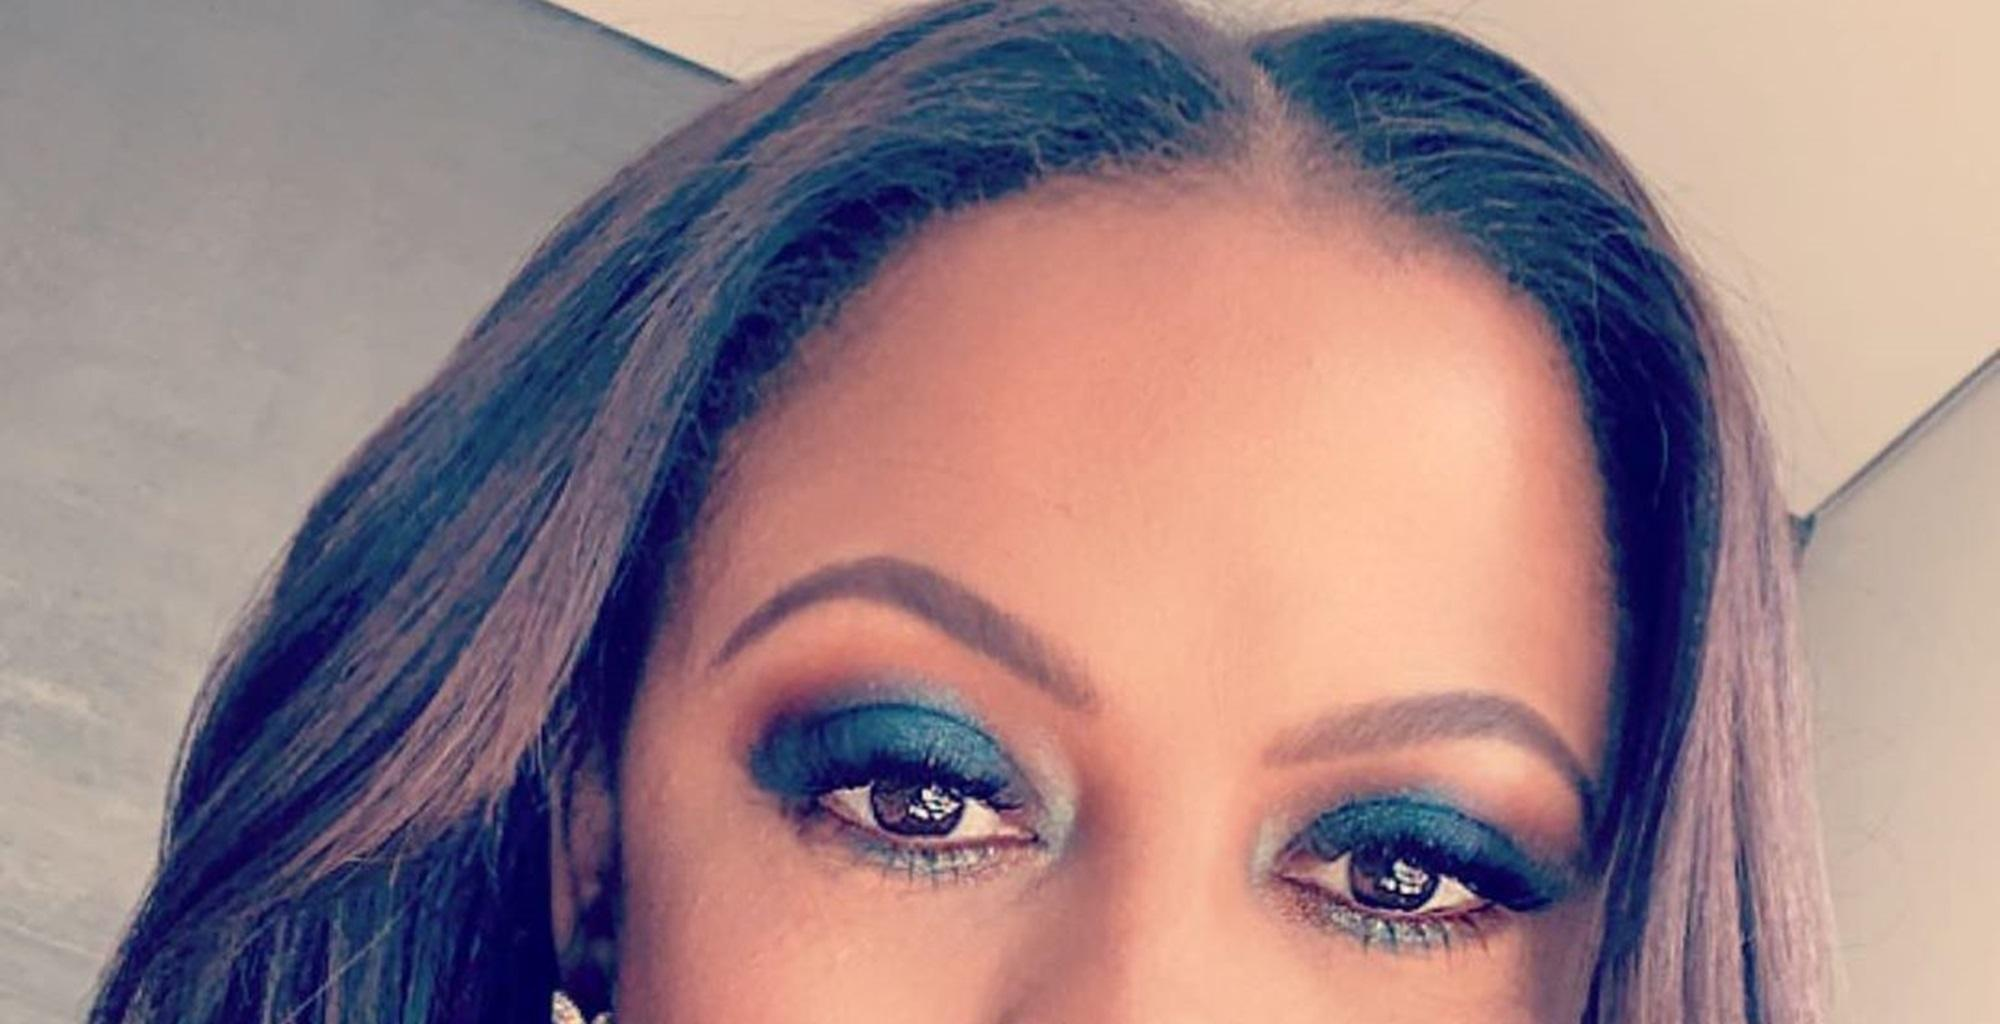 Shaquille O'Neal Is Not Getting Back Together With Ex-Wife Shaunie O'Neal -- 'Basketball Wives' Star Explains Why In This Official Statement